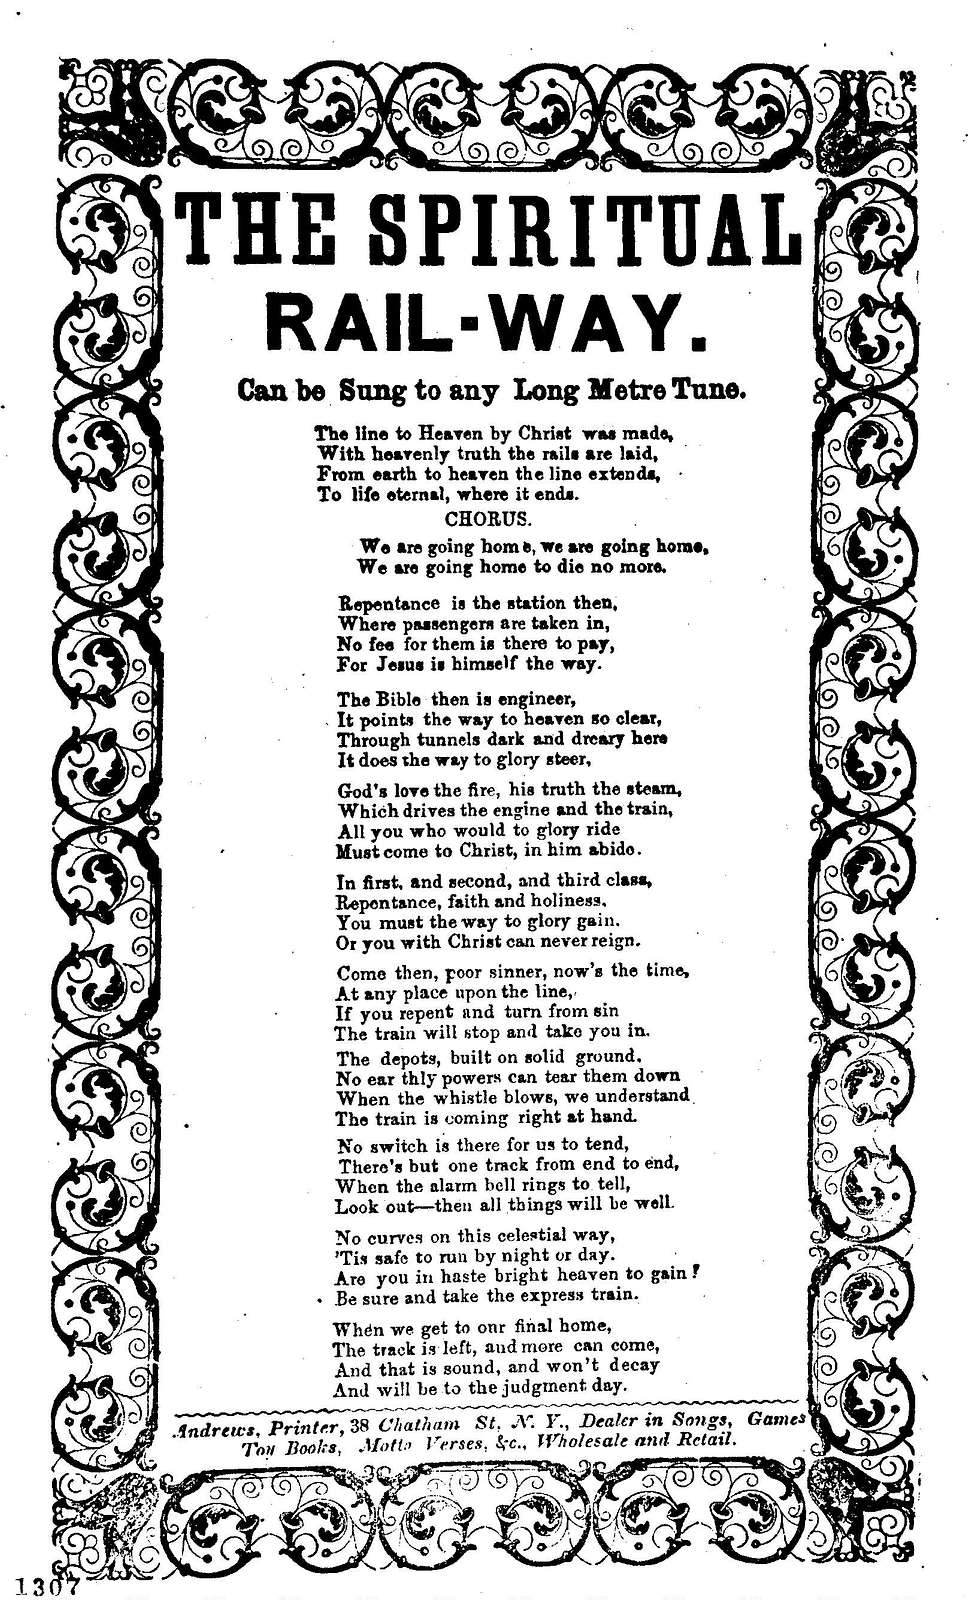 The spiritual rail-way. Can be sung to any long metre tune. Andrews, Printer, 38 Chatham Street, N. Y